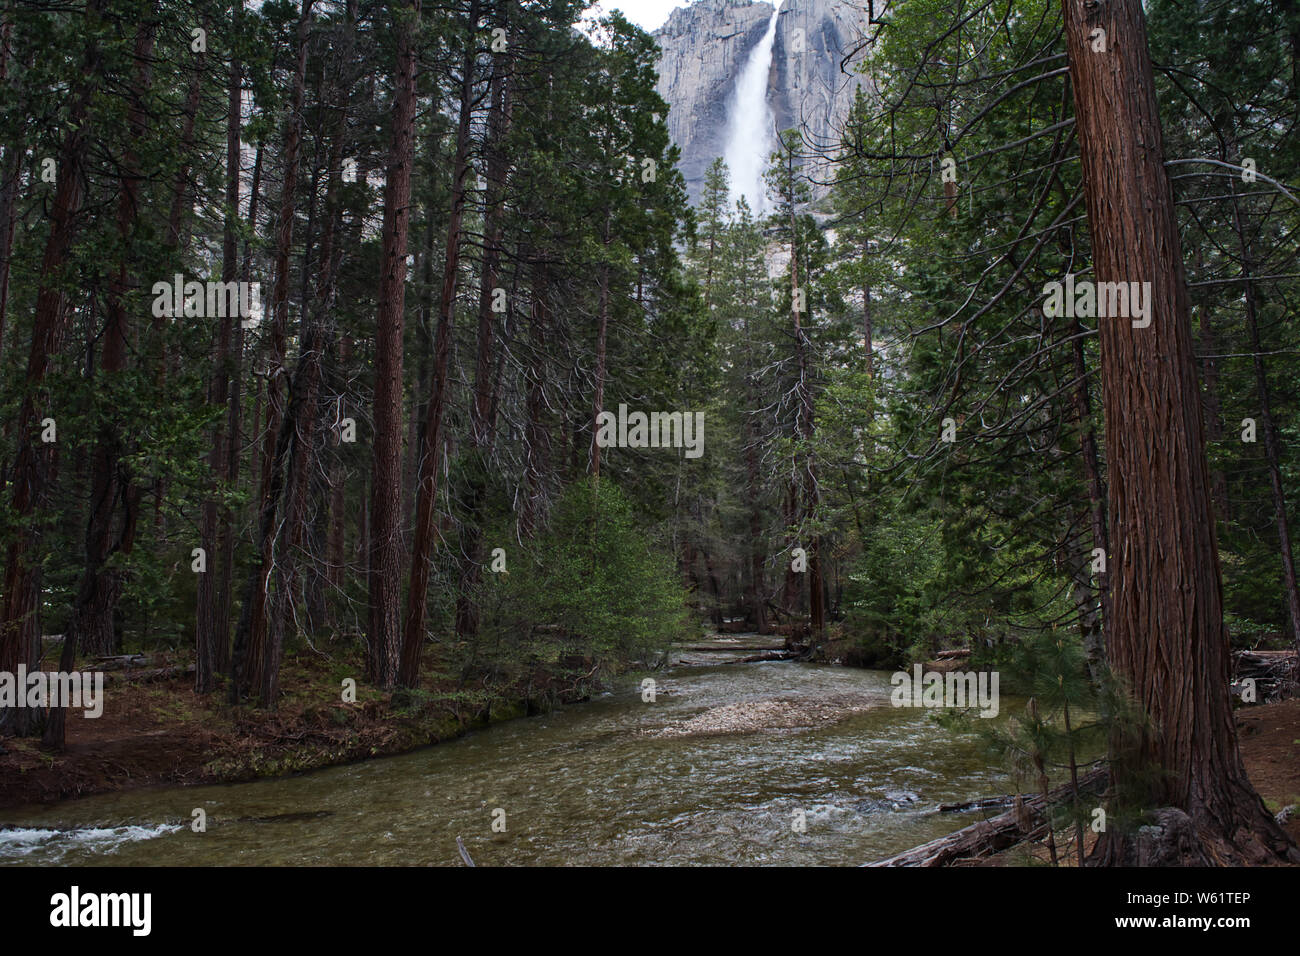 Falls Through a Forest in Yosemite Stock Photo